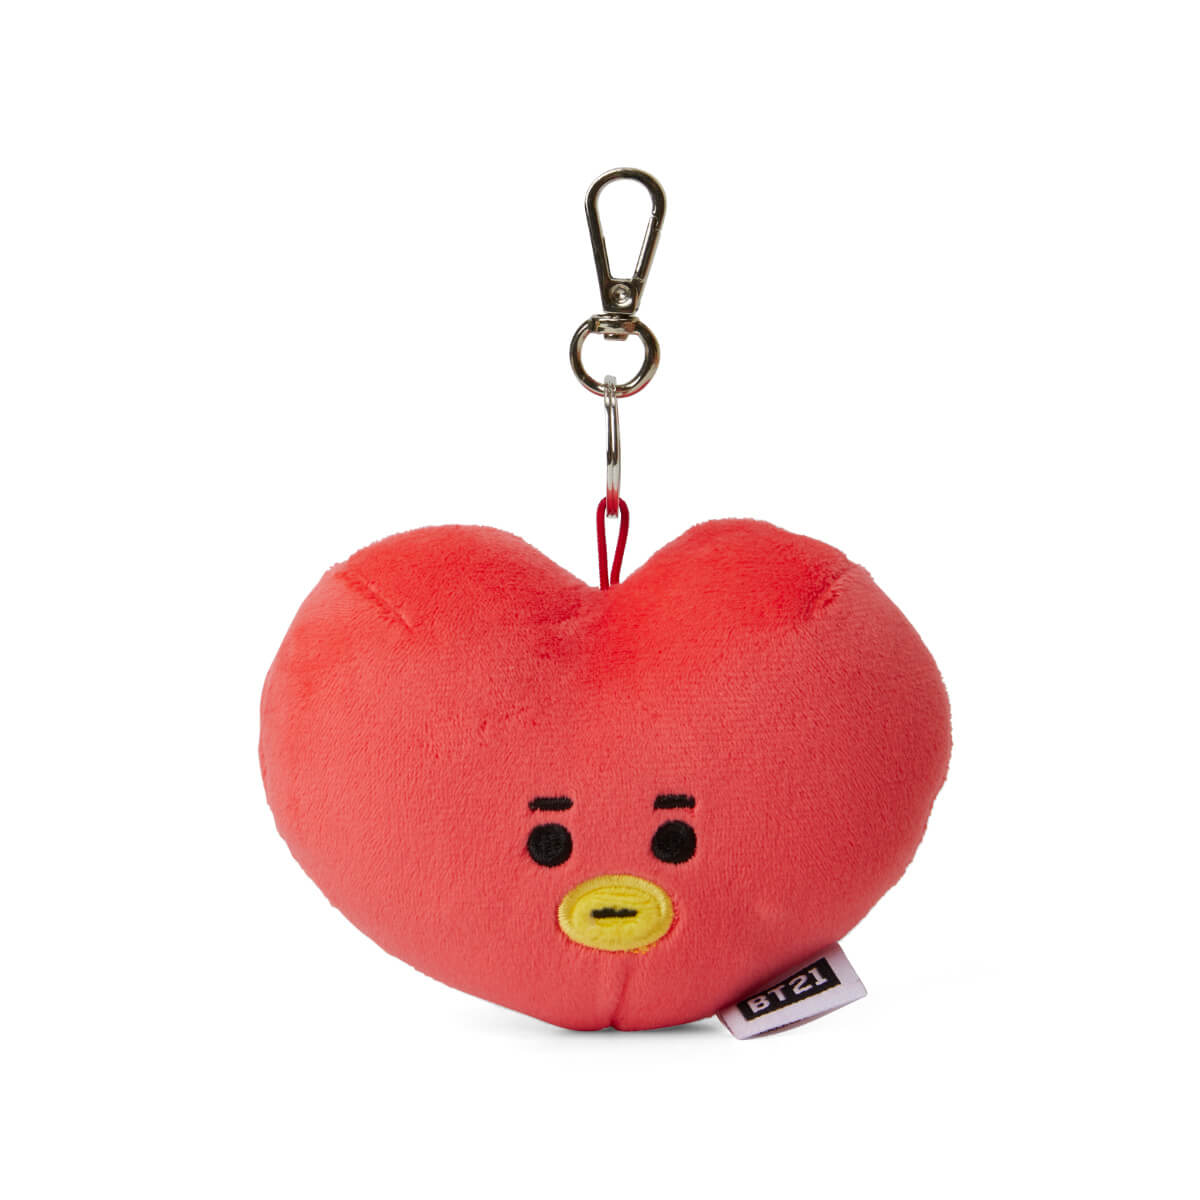 BT21 TATA BABY Lighting Bag Charm Doll